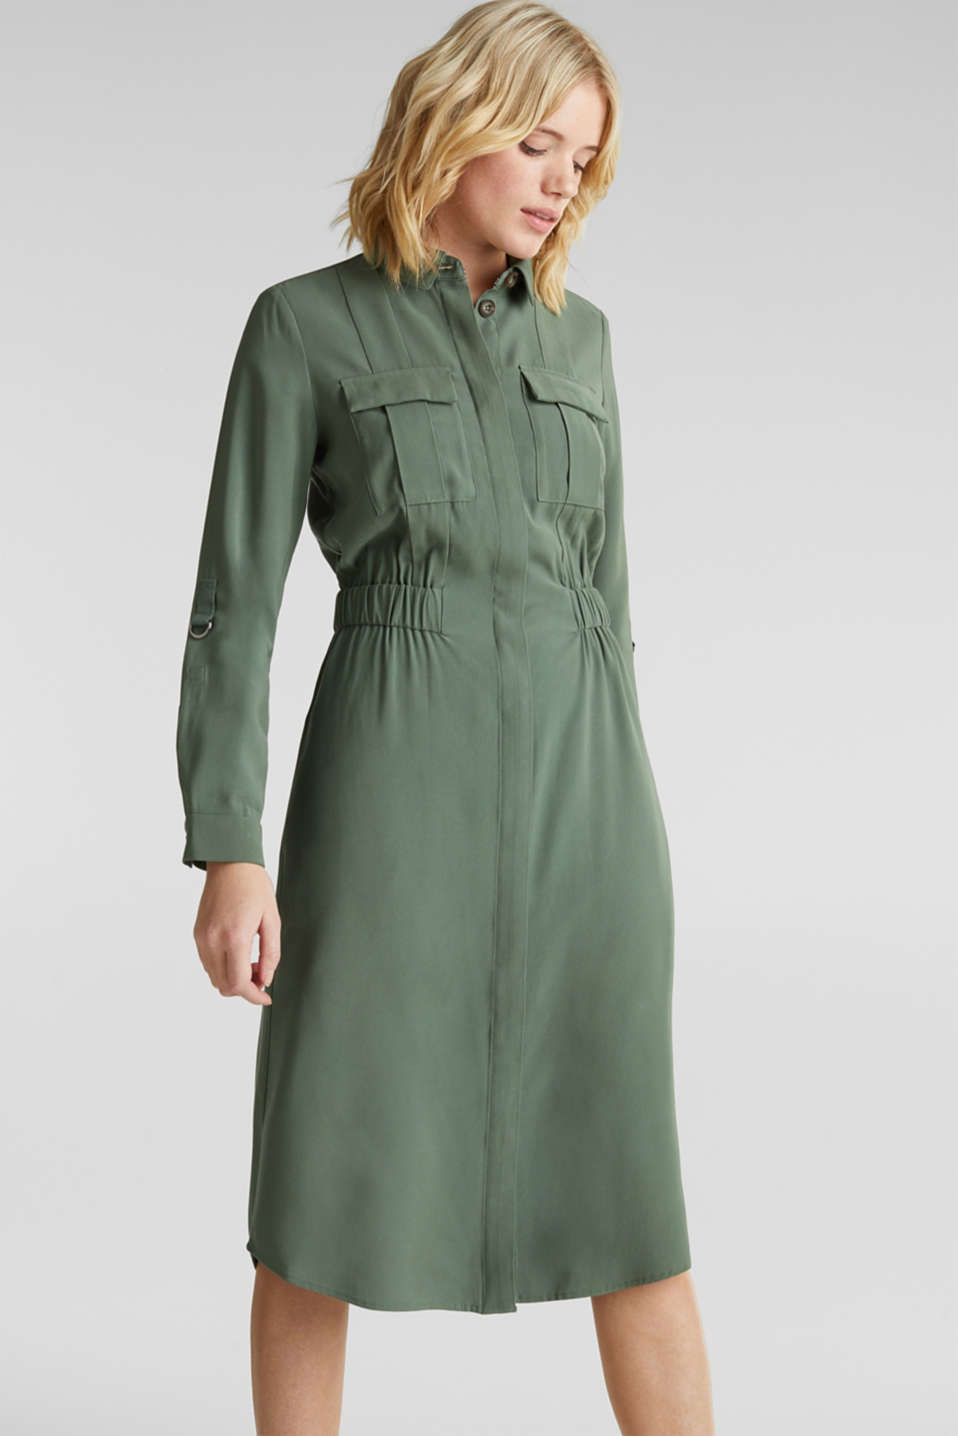 Esprit - Shirt dress in a utility style